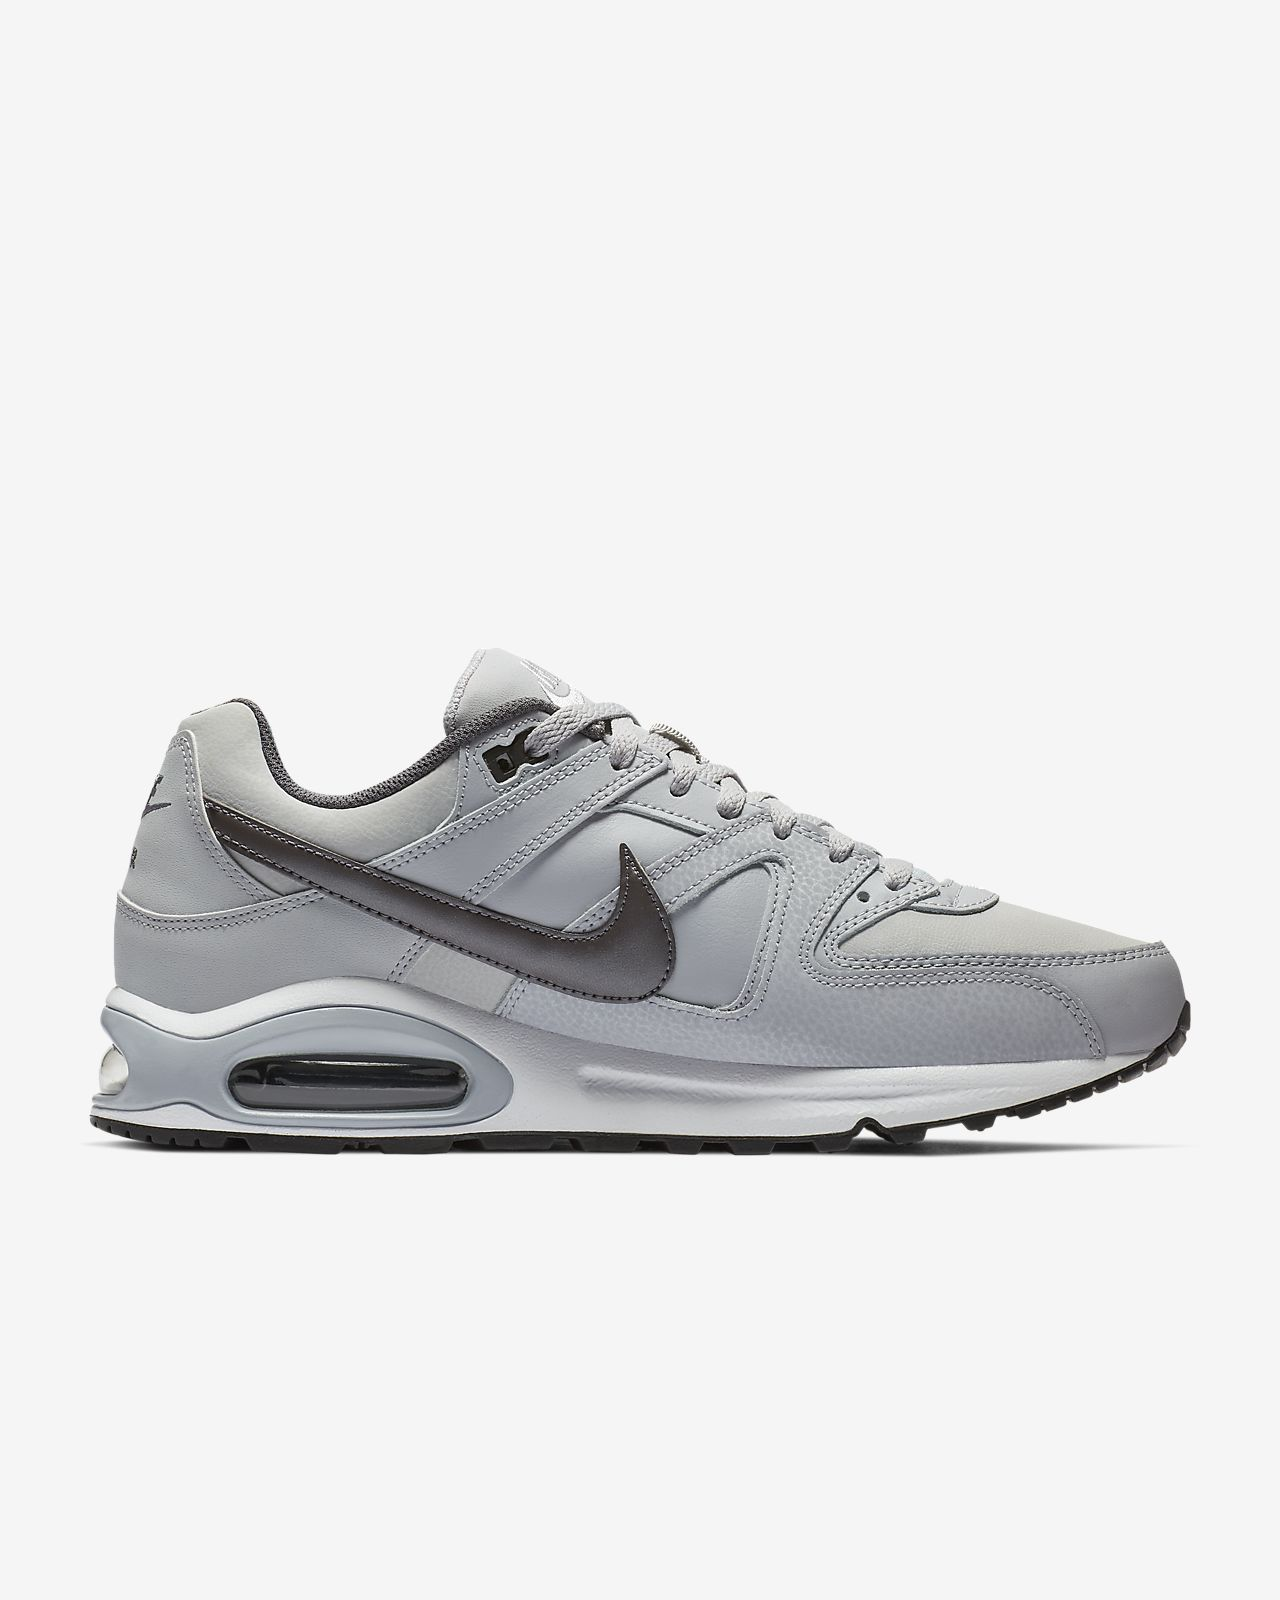 Homme Air Nike Command Pour Max Chaussure byfg6Y7